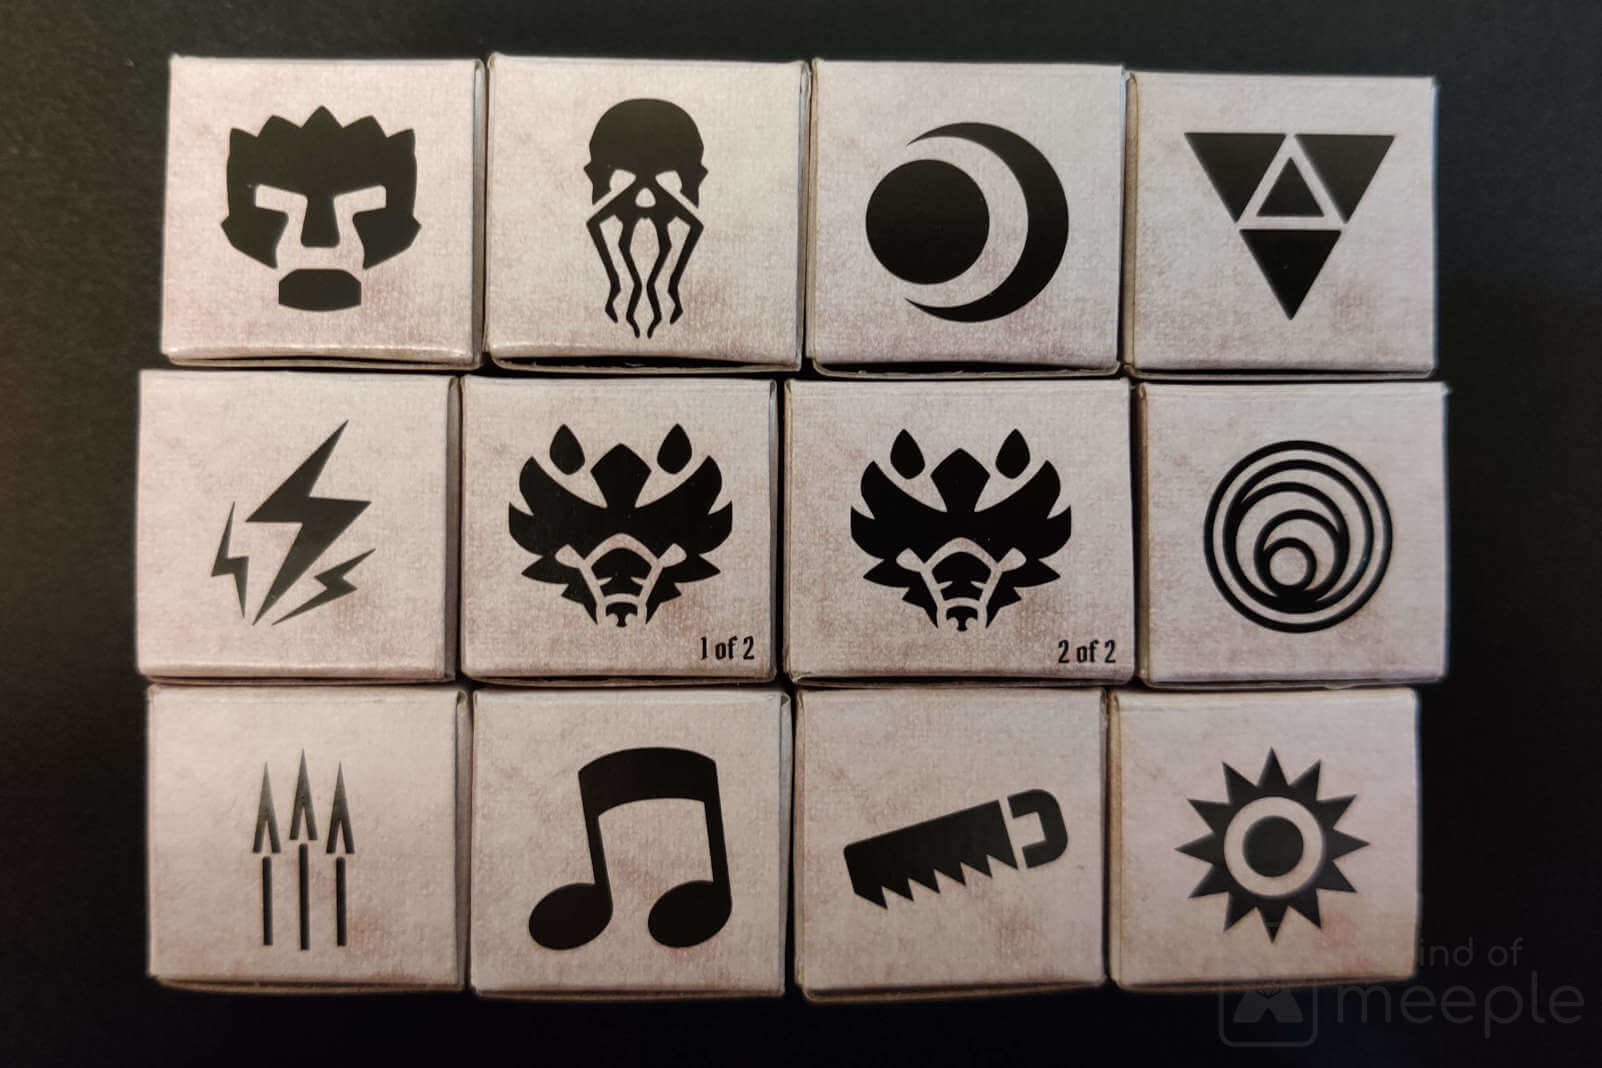 Gloomhaven unlockable locked classes box symbols